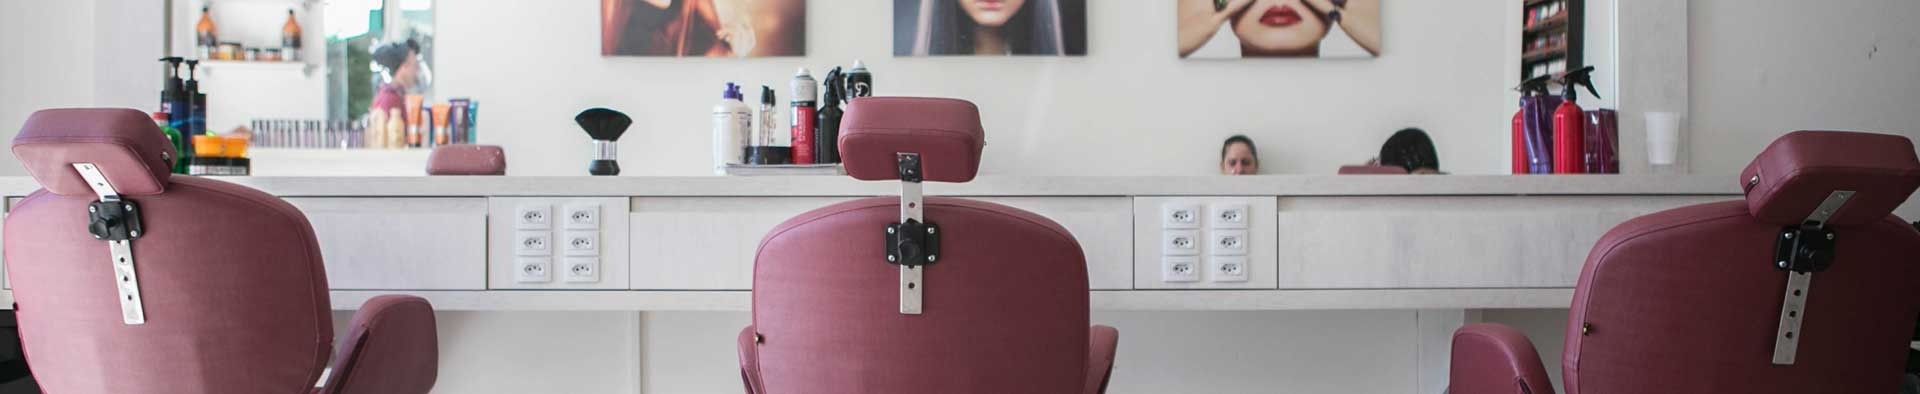 Hairdressers in Coronavirus time, online appointments and protection screens